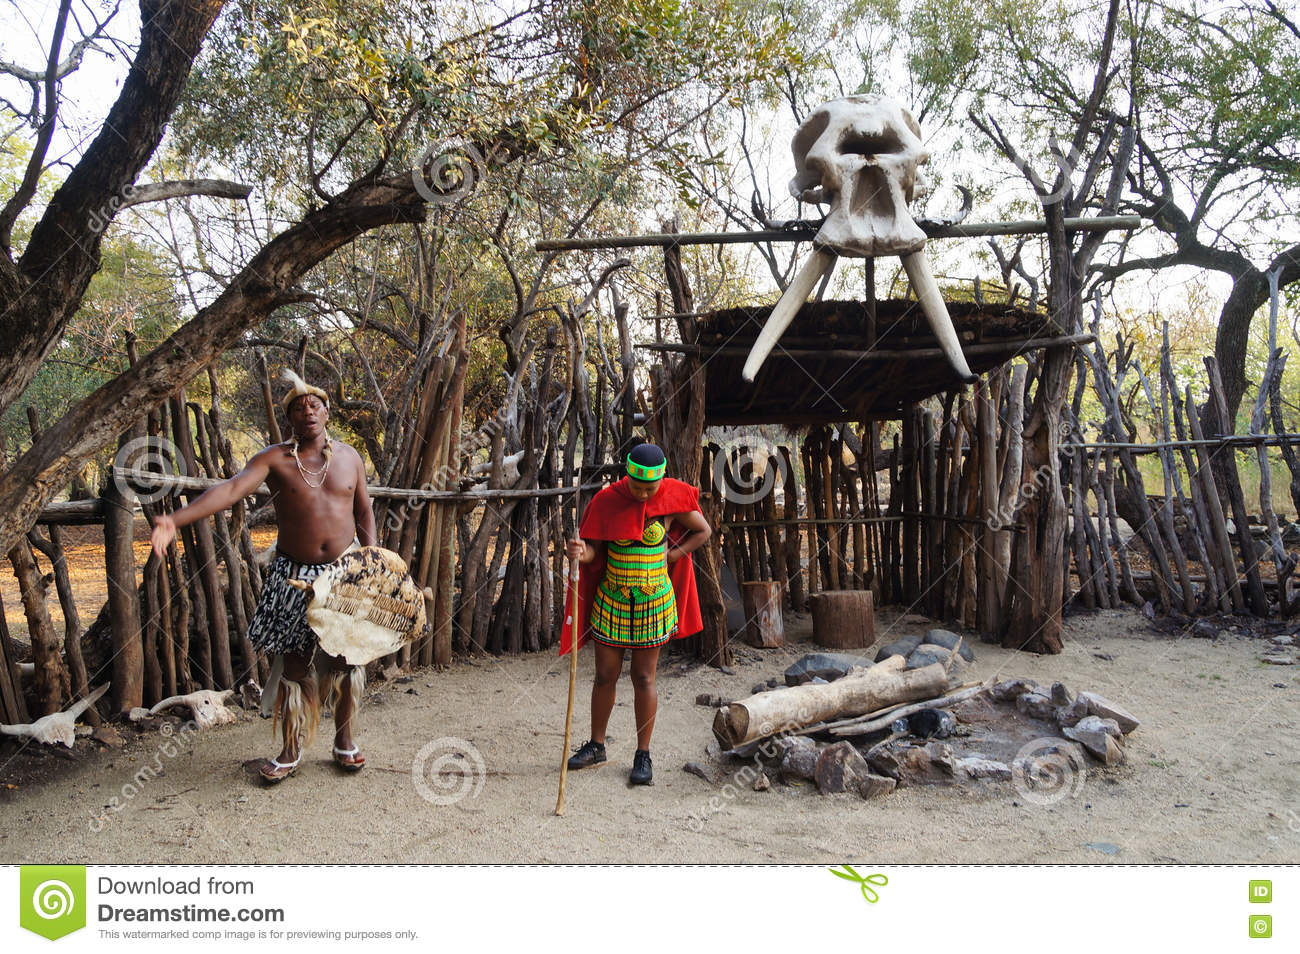 analysing south african culture Culture in south africa south africa has been famously referred to as the rainbow nation because it is made up of so many diverse cultures and religions contained within south africa's borders are zulu, xhosa, pedi, tswana, ndebele, khoisan, hindu, muslim, and afrikaner people to name but a few.